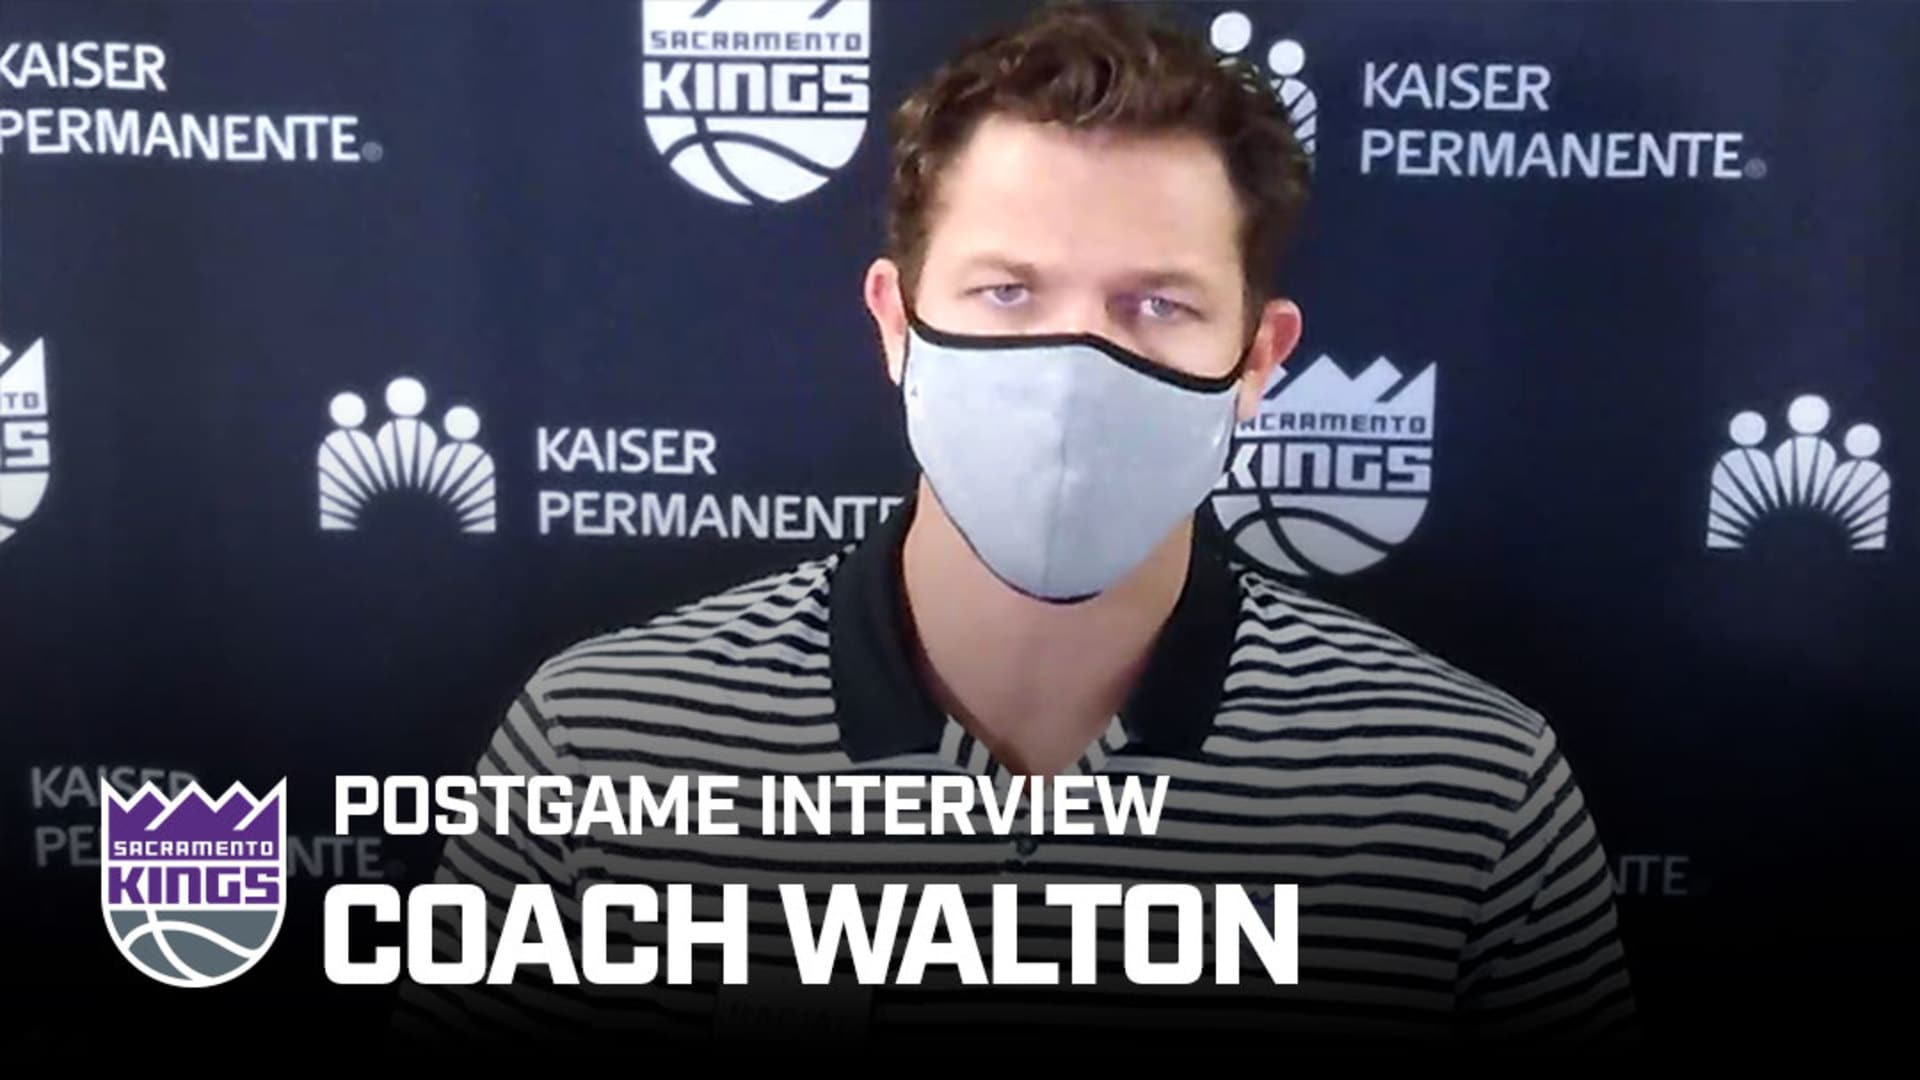 'Our Guys Responded Nicely' | Coach Walton Postgame Interview 8.11.20